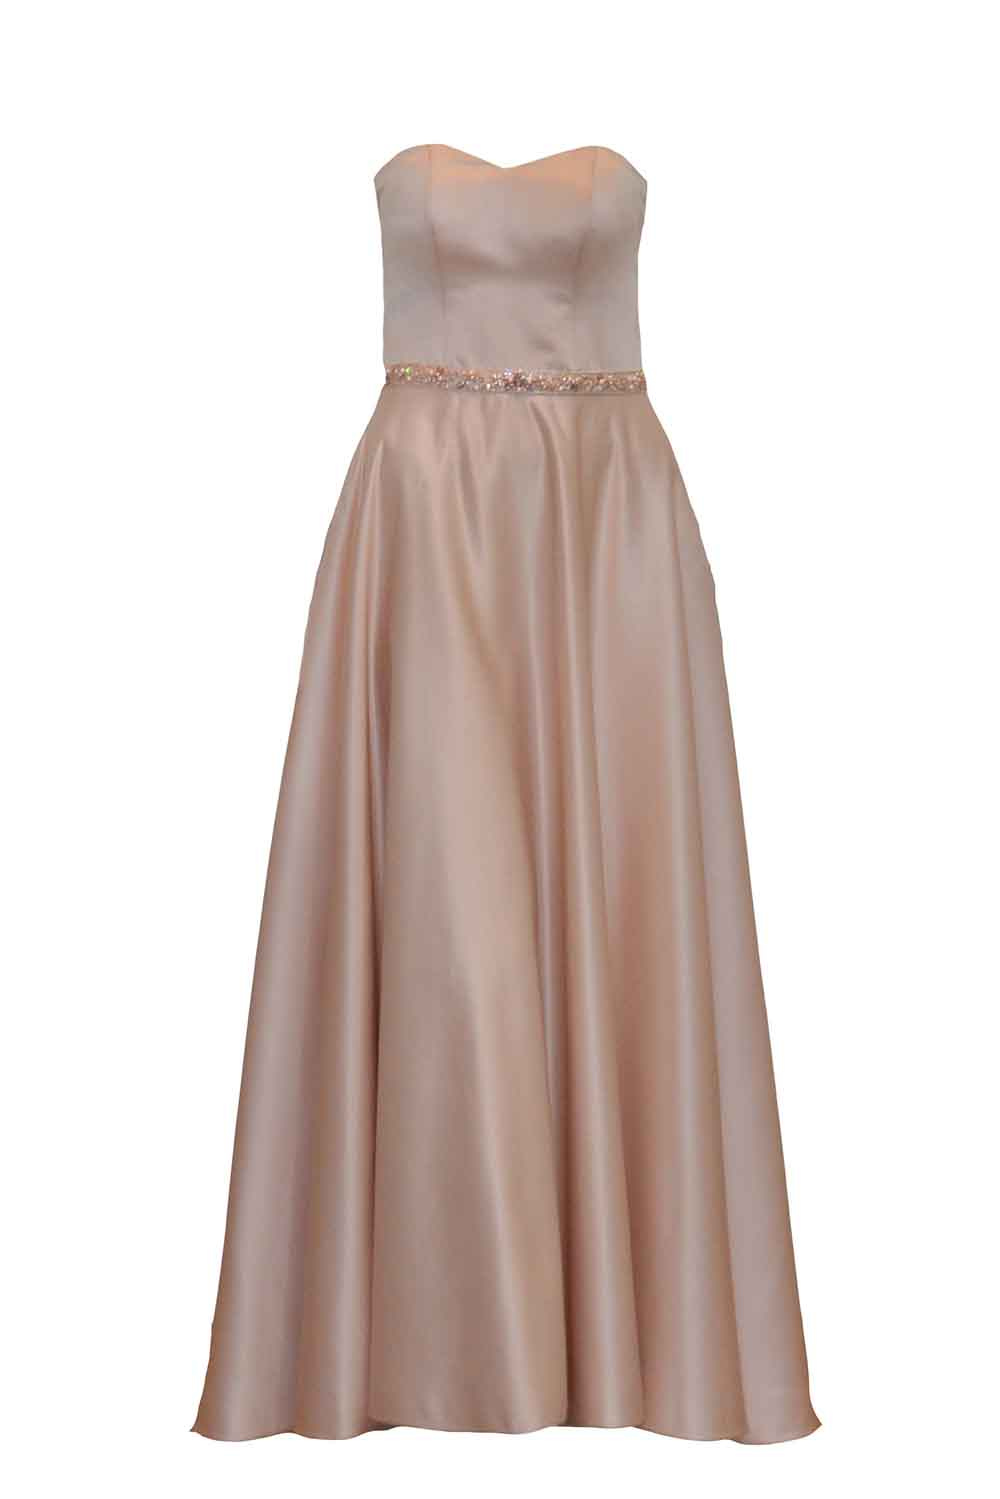 Sale:  Gisela Privee Nude Tube Dress